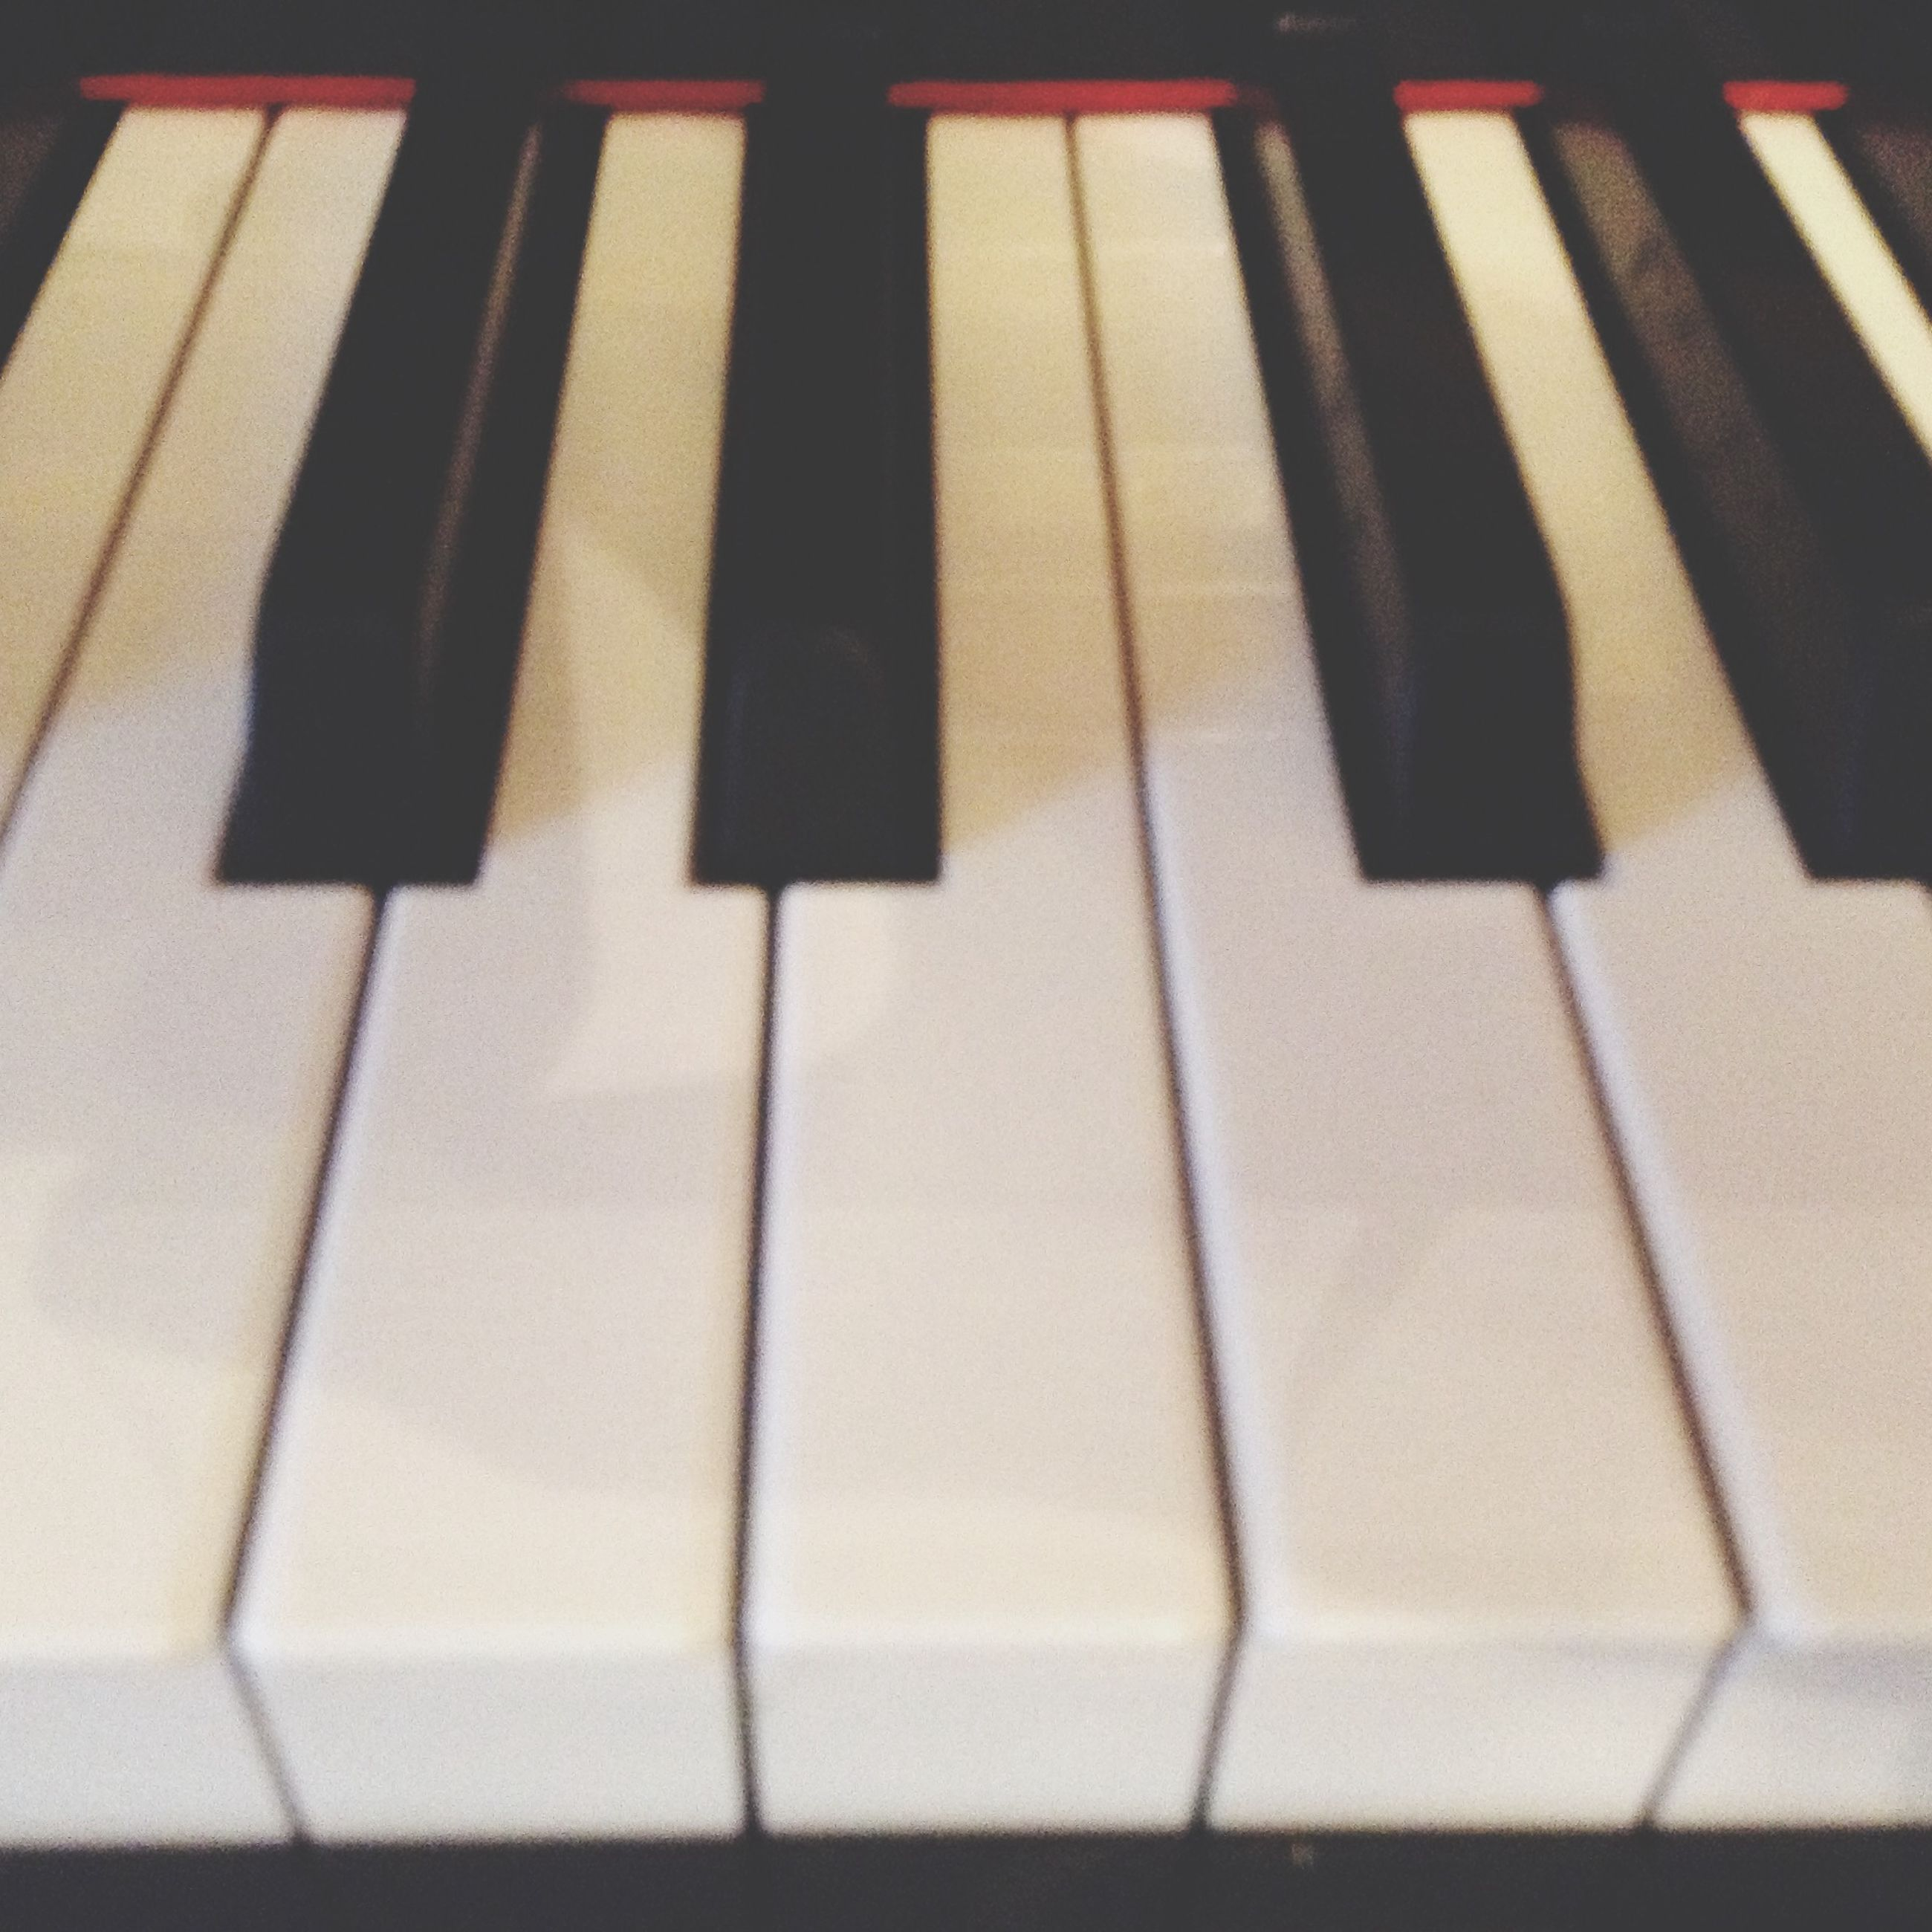 indoors, in a row, still life, close-up, high angle view, repetition, order, side by side, arrangement, no people, pattern, table, full frame, piano key, large group of objects, backgrounds, piano, selective focus, music, variation